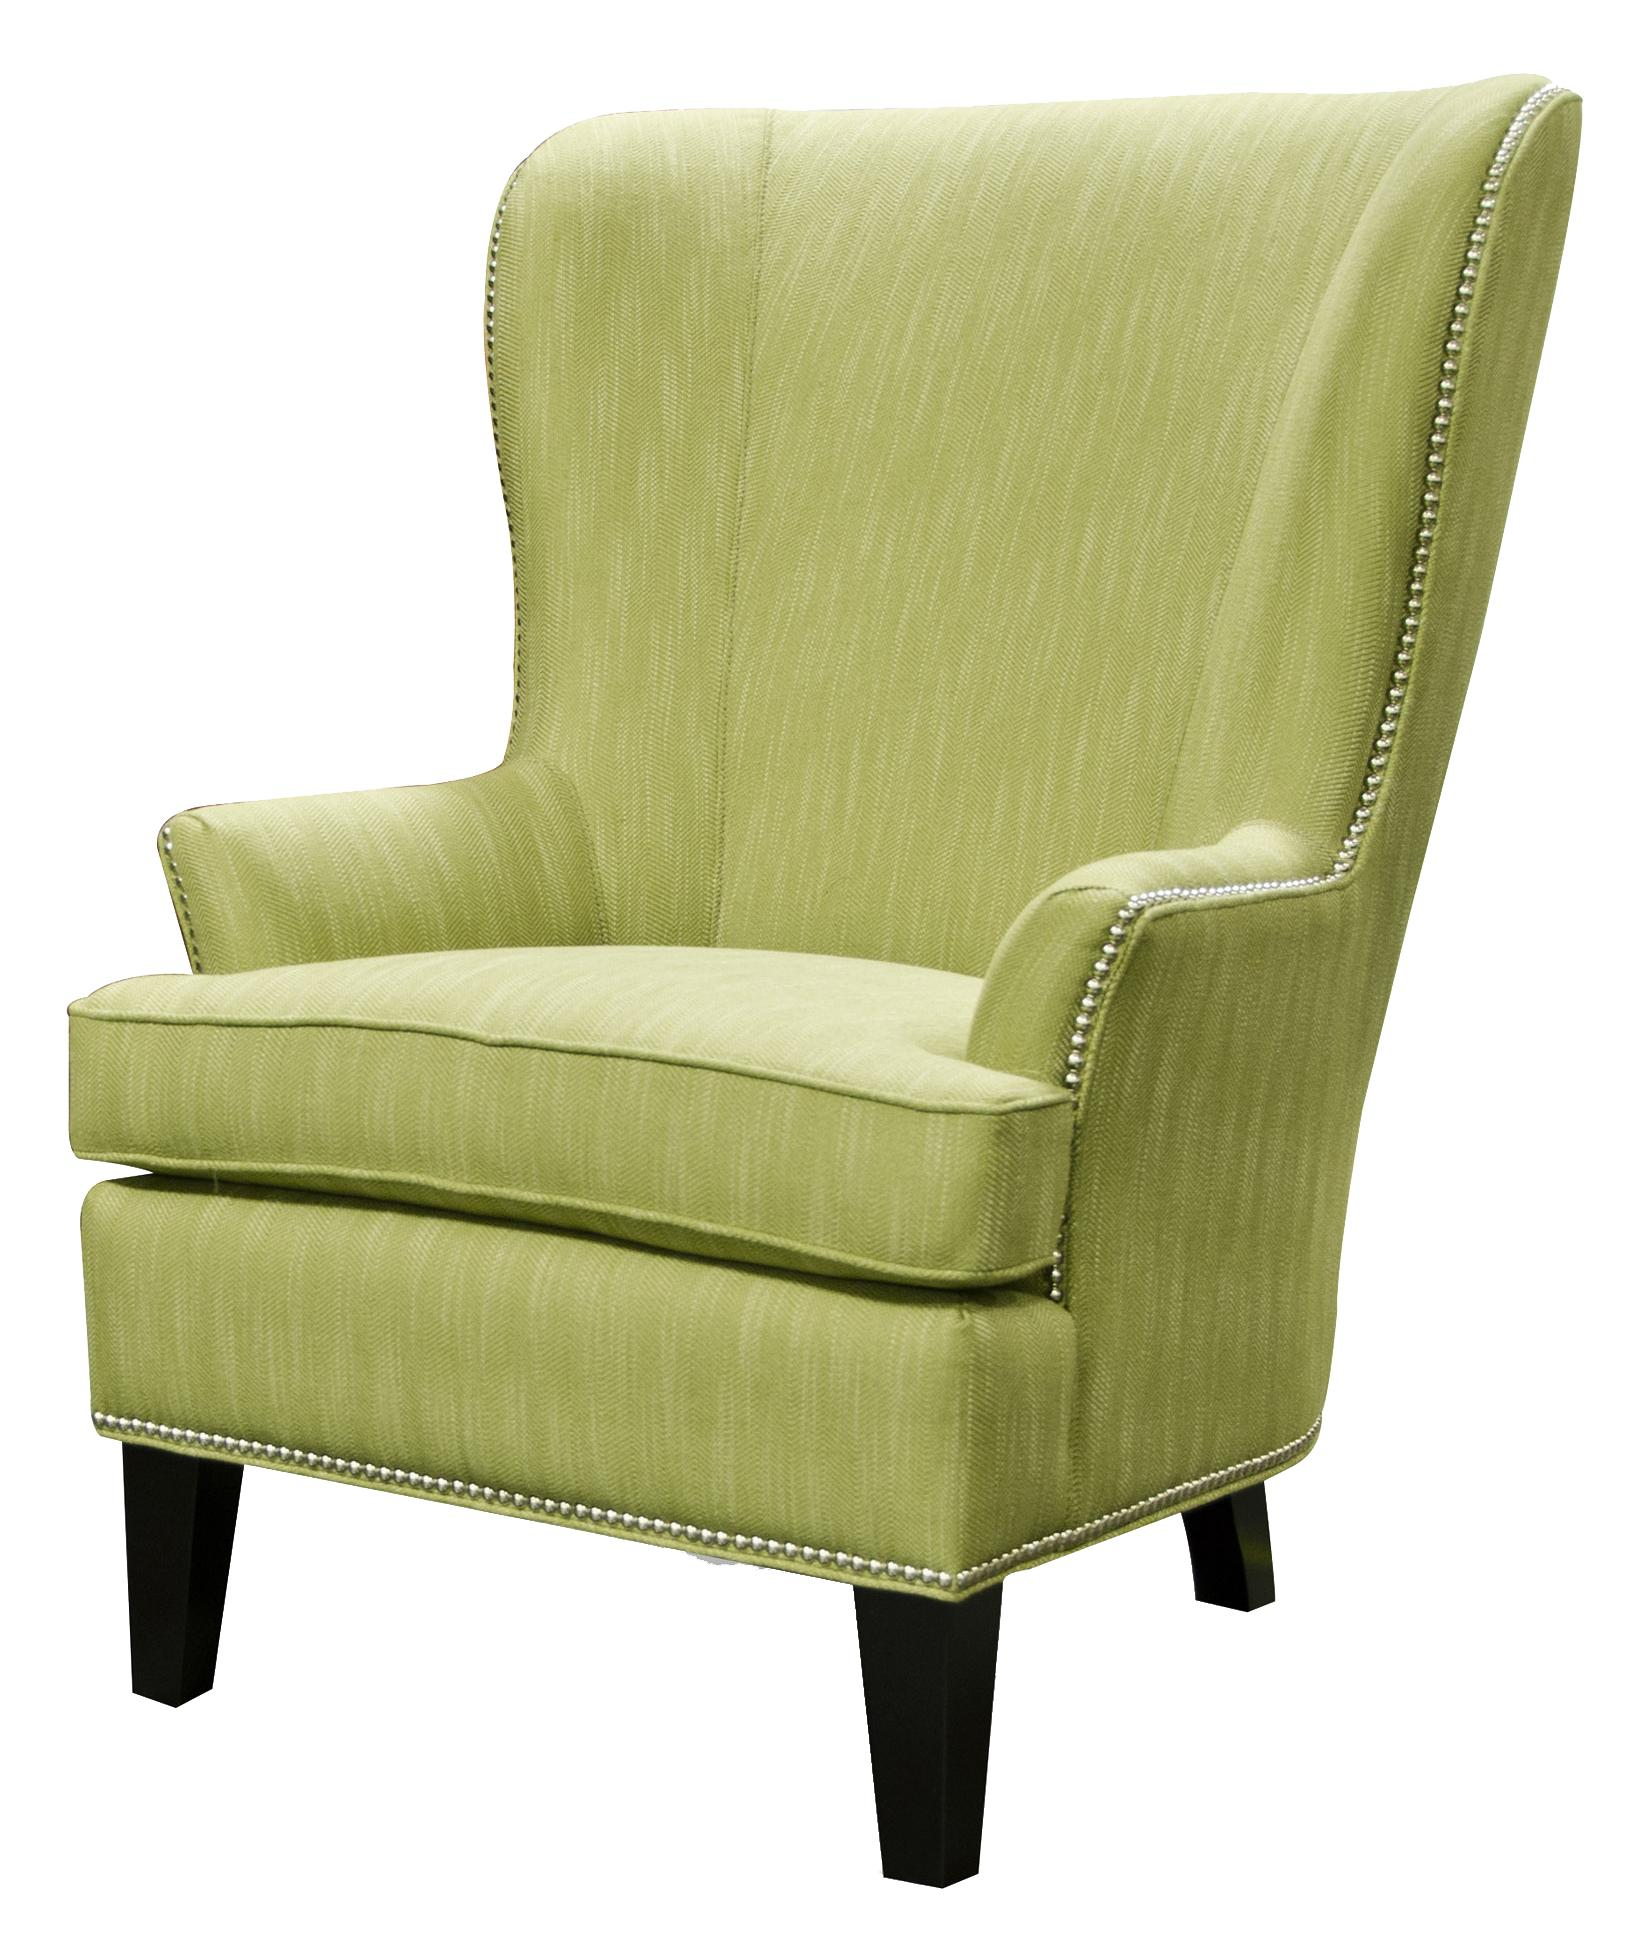 Saylor Wing Chair by England at Virginia Furniture Market